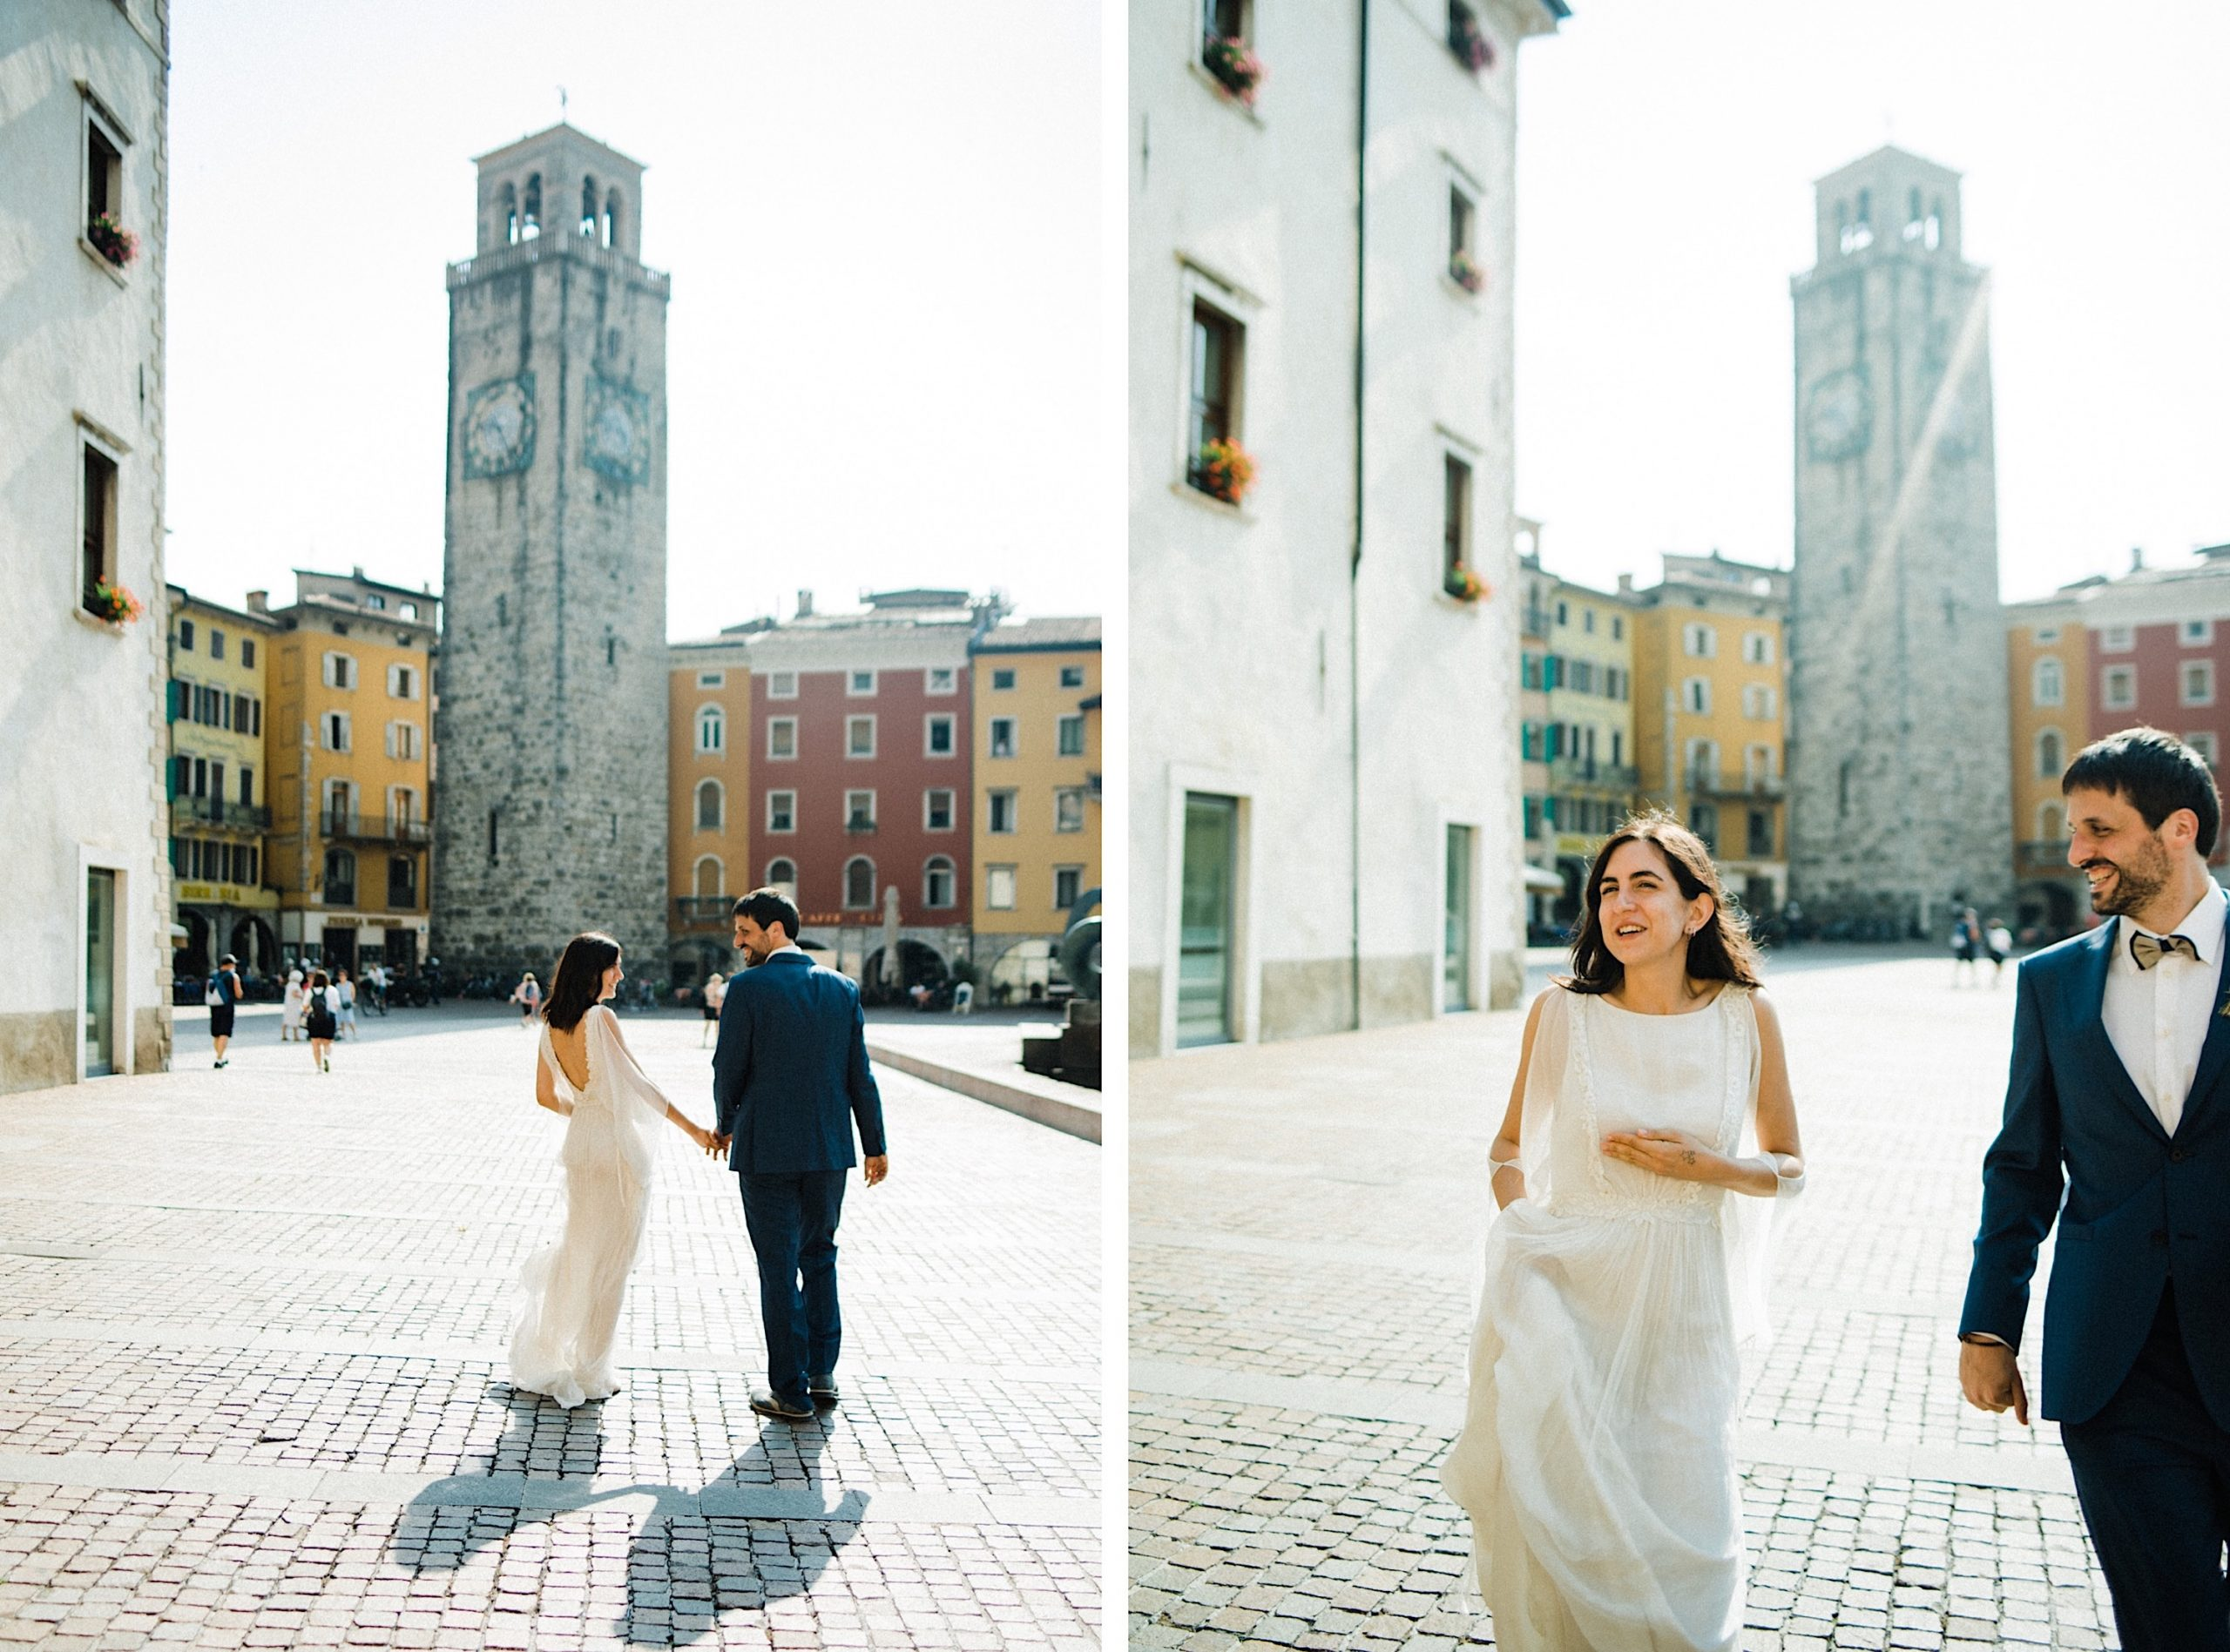 Two photos, side-by-side, of a newly married couple running through a piazza in Italy, in front of a clock tower.